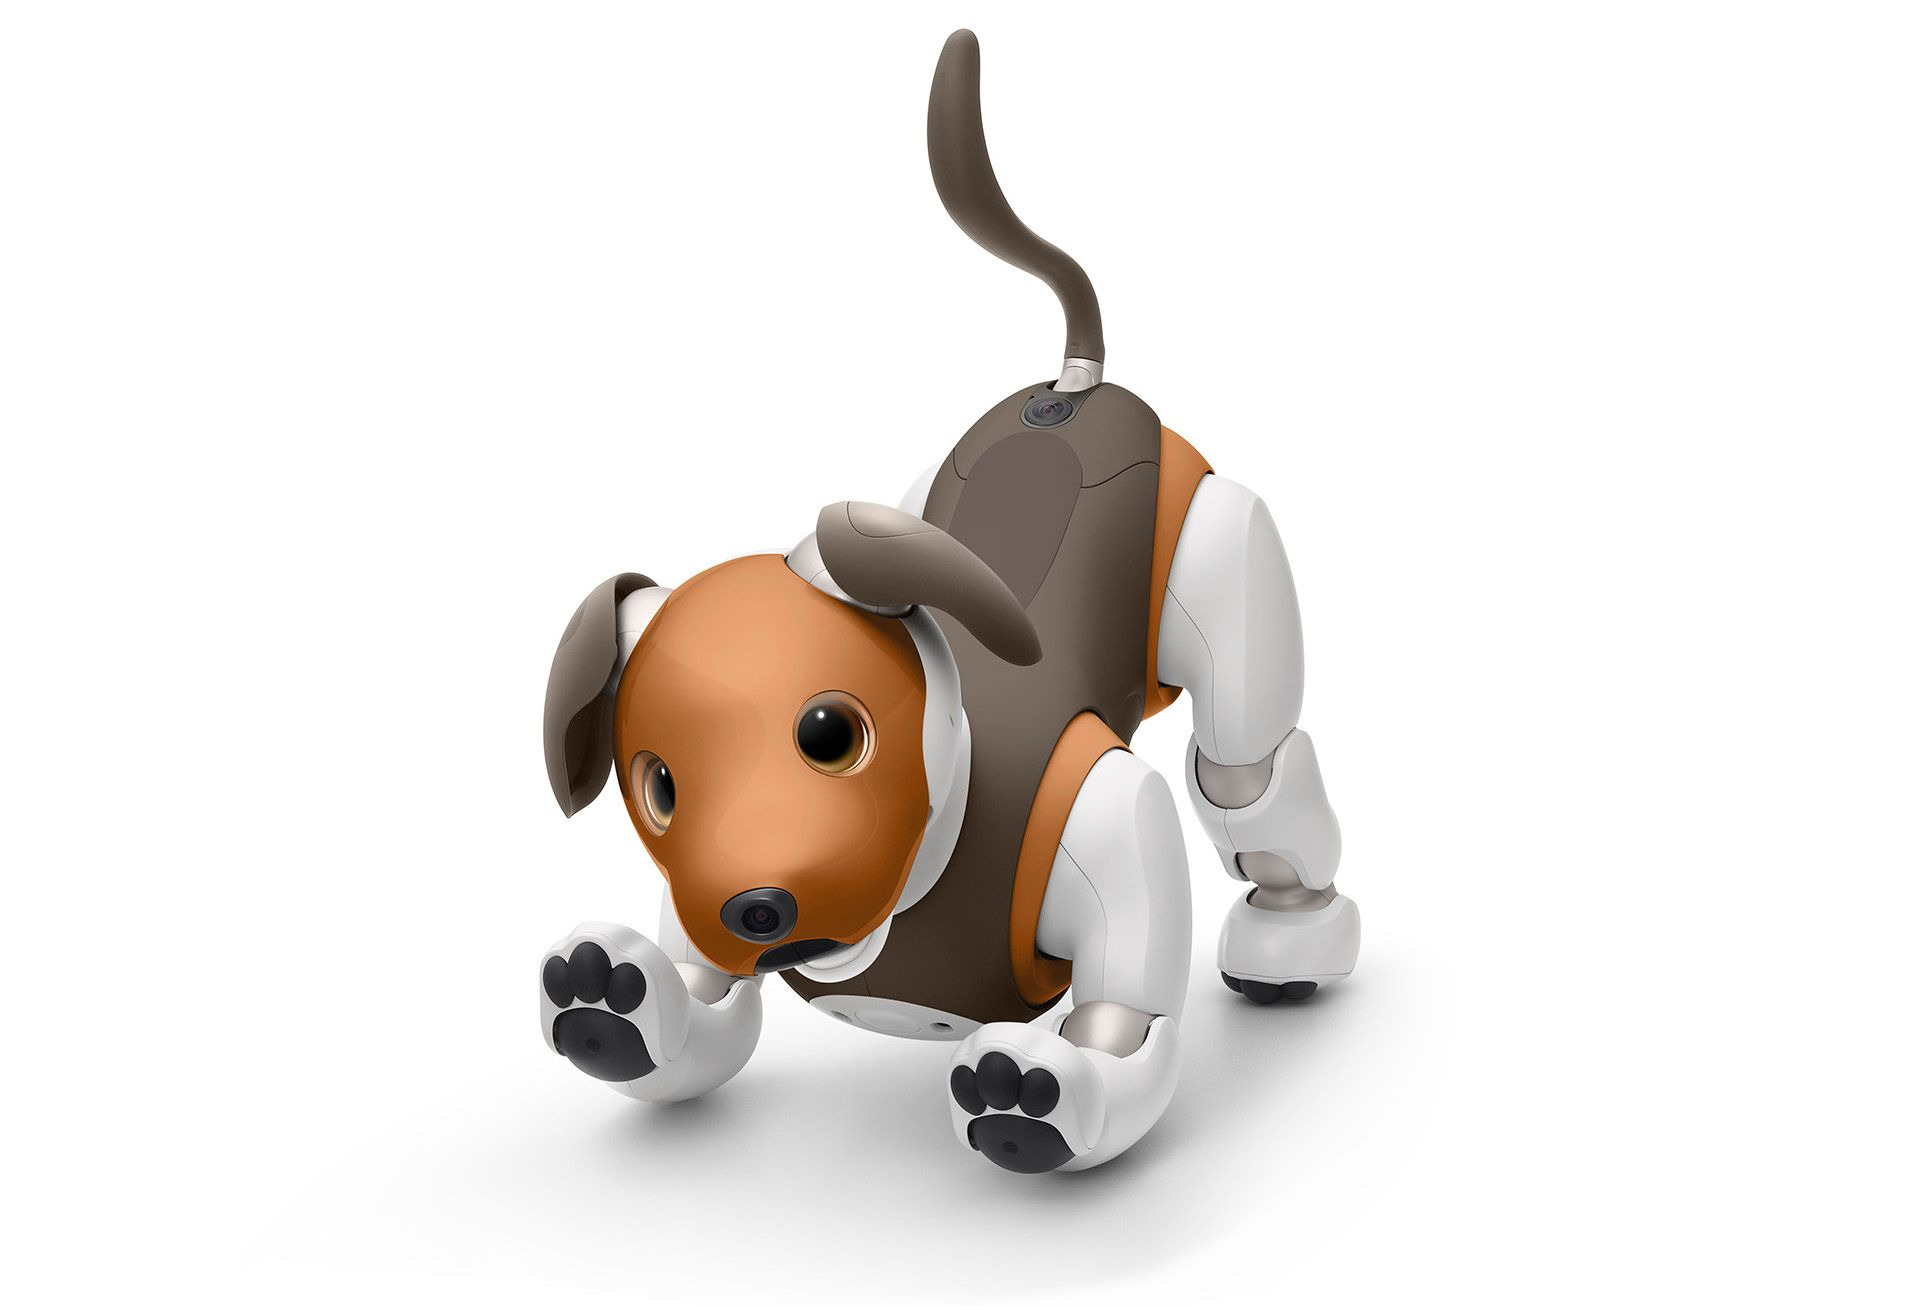 Sony's Aibo robot dog, chocolate edition